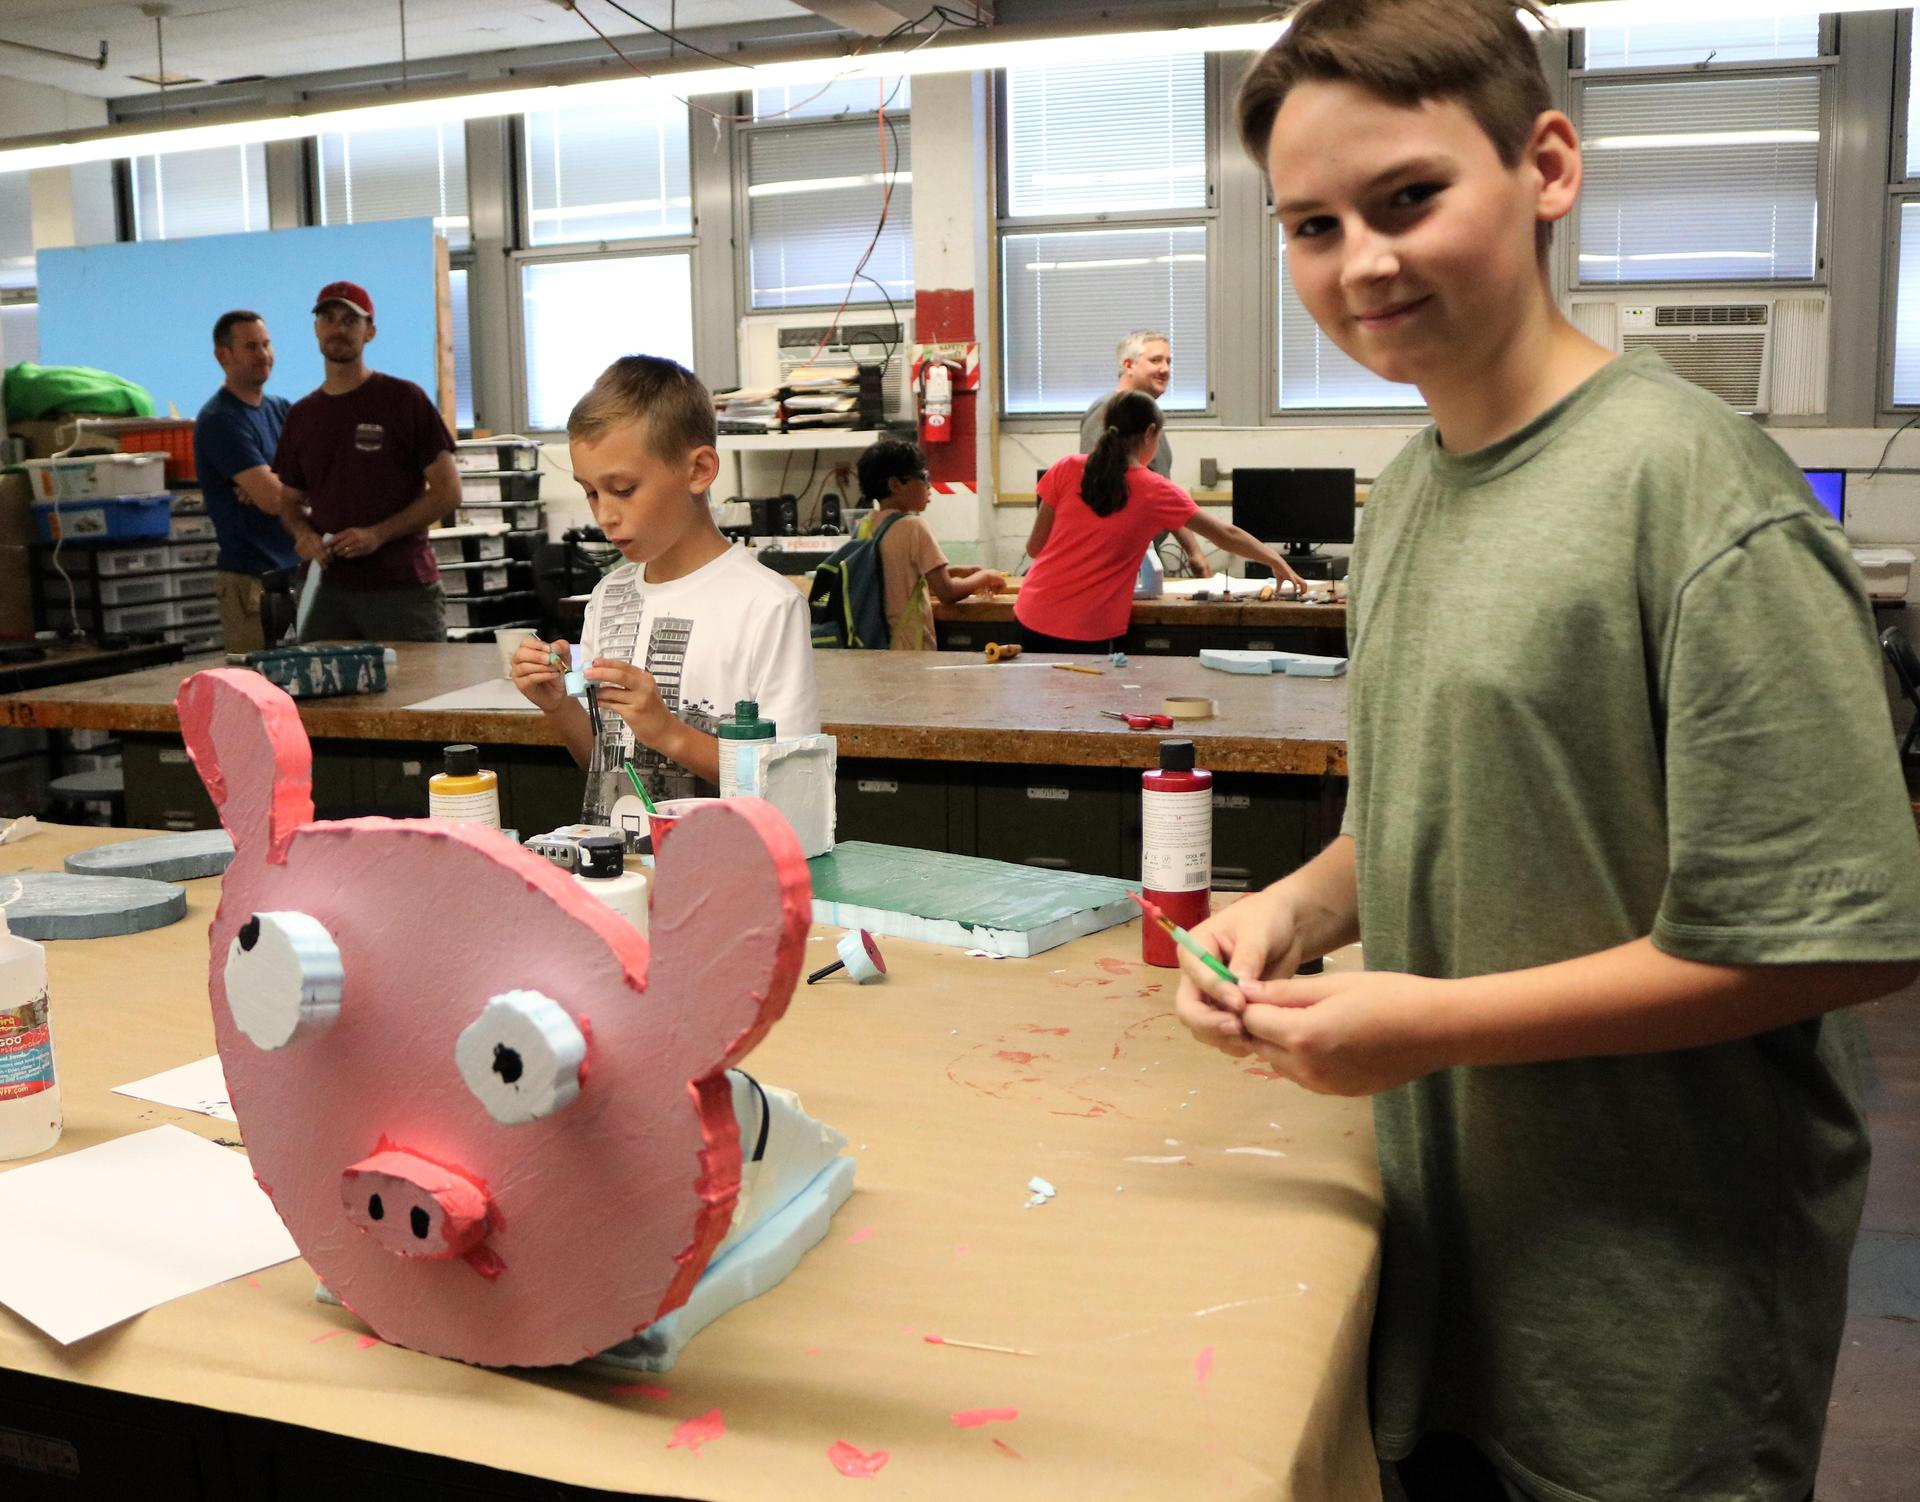 Student enjoys Animatronics and Robotics at STEM Camp.